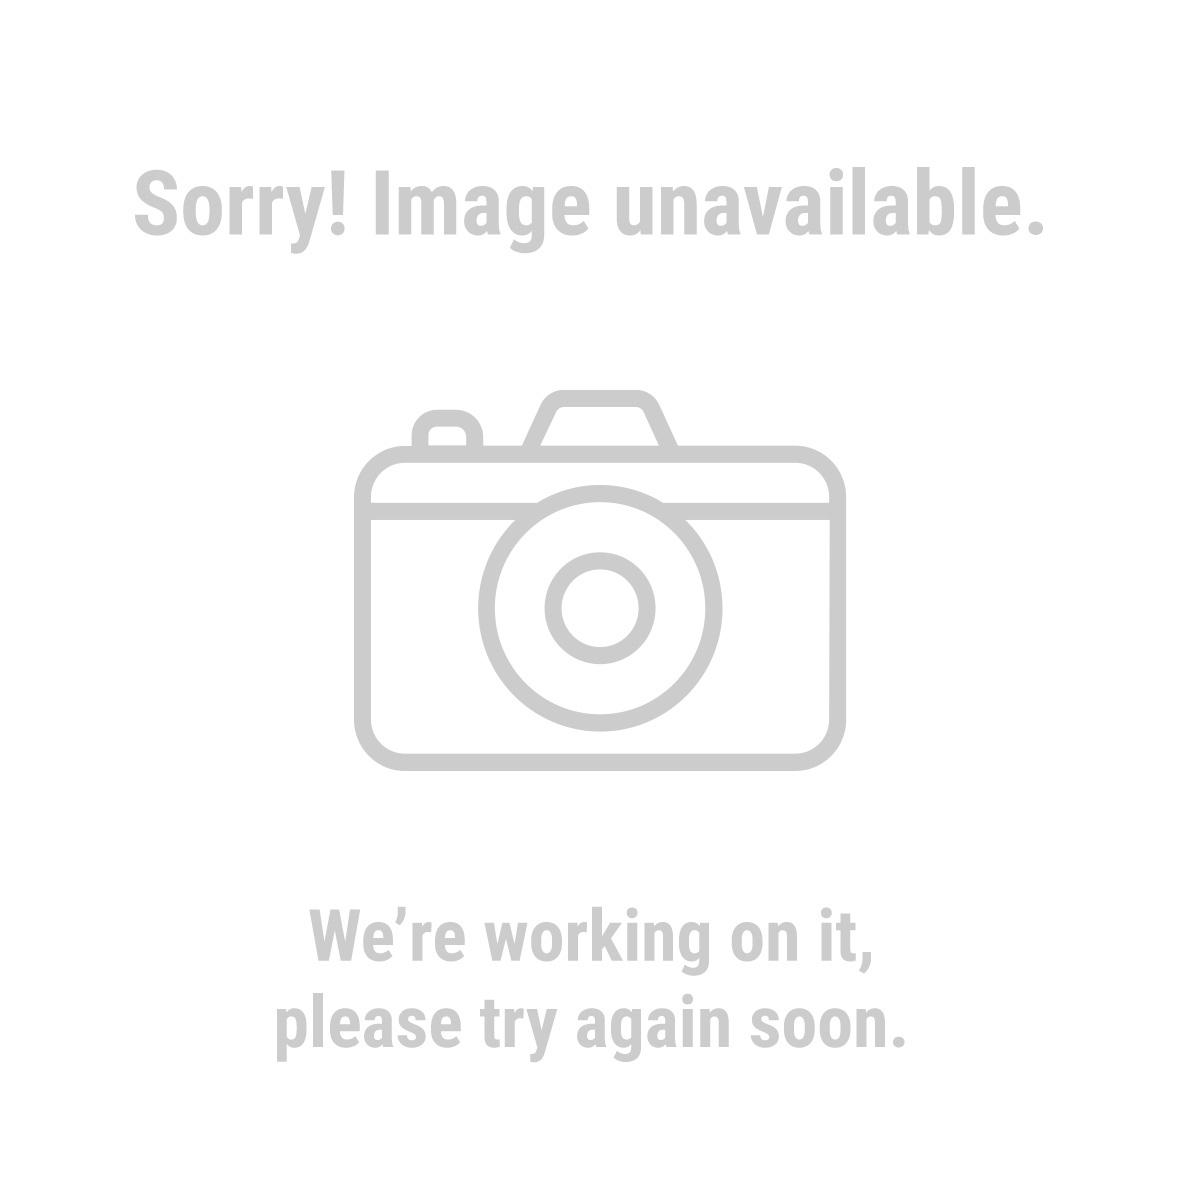 Central Pneumatic® 69669 1.8 Horsepower, 26 Gallon, 150 PSI PSI Oilless Air Compressor